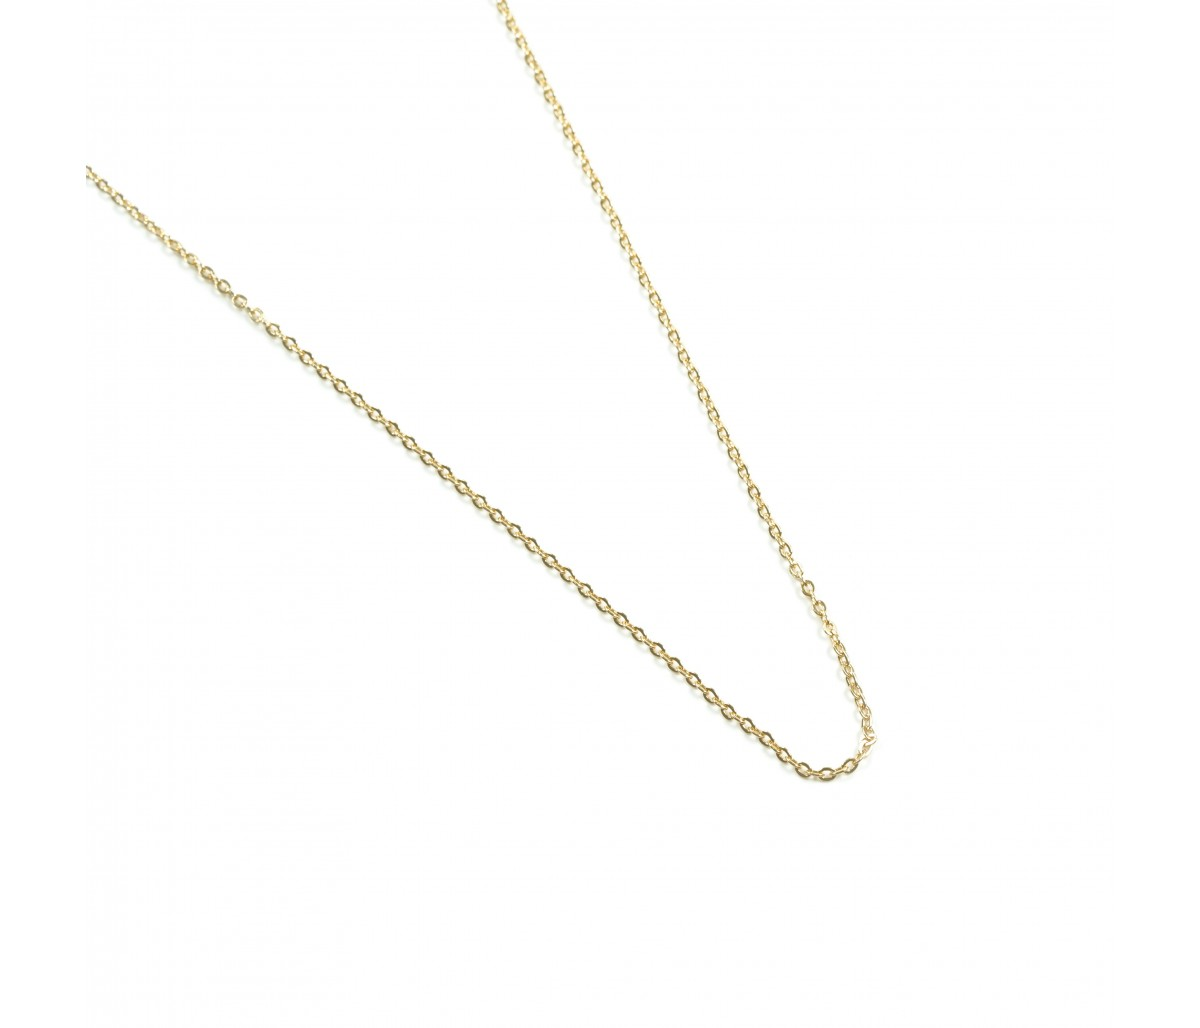 19k gold Archie chain